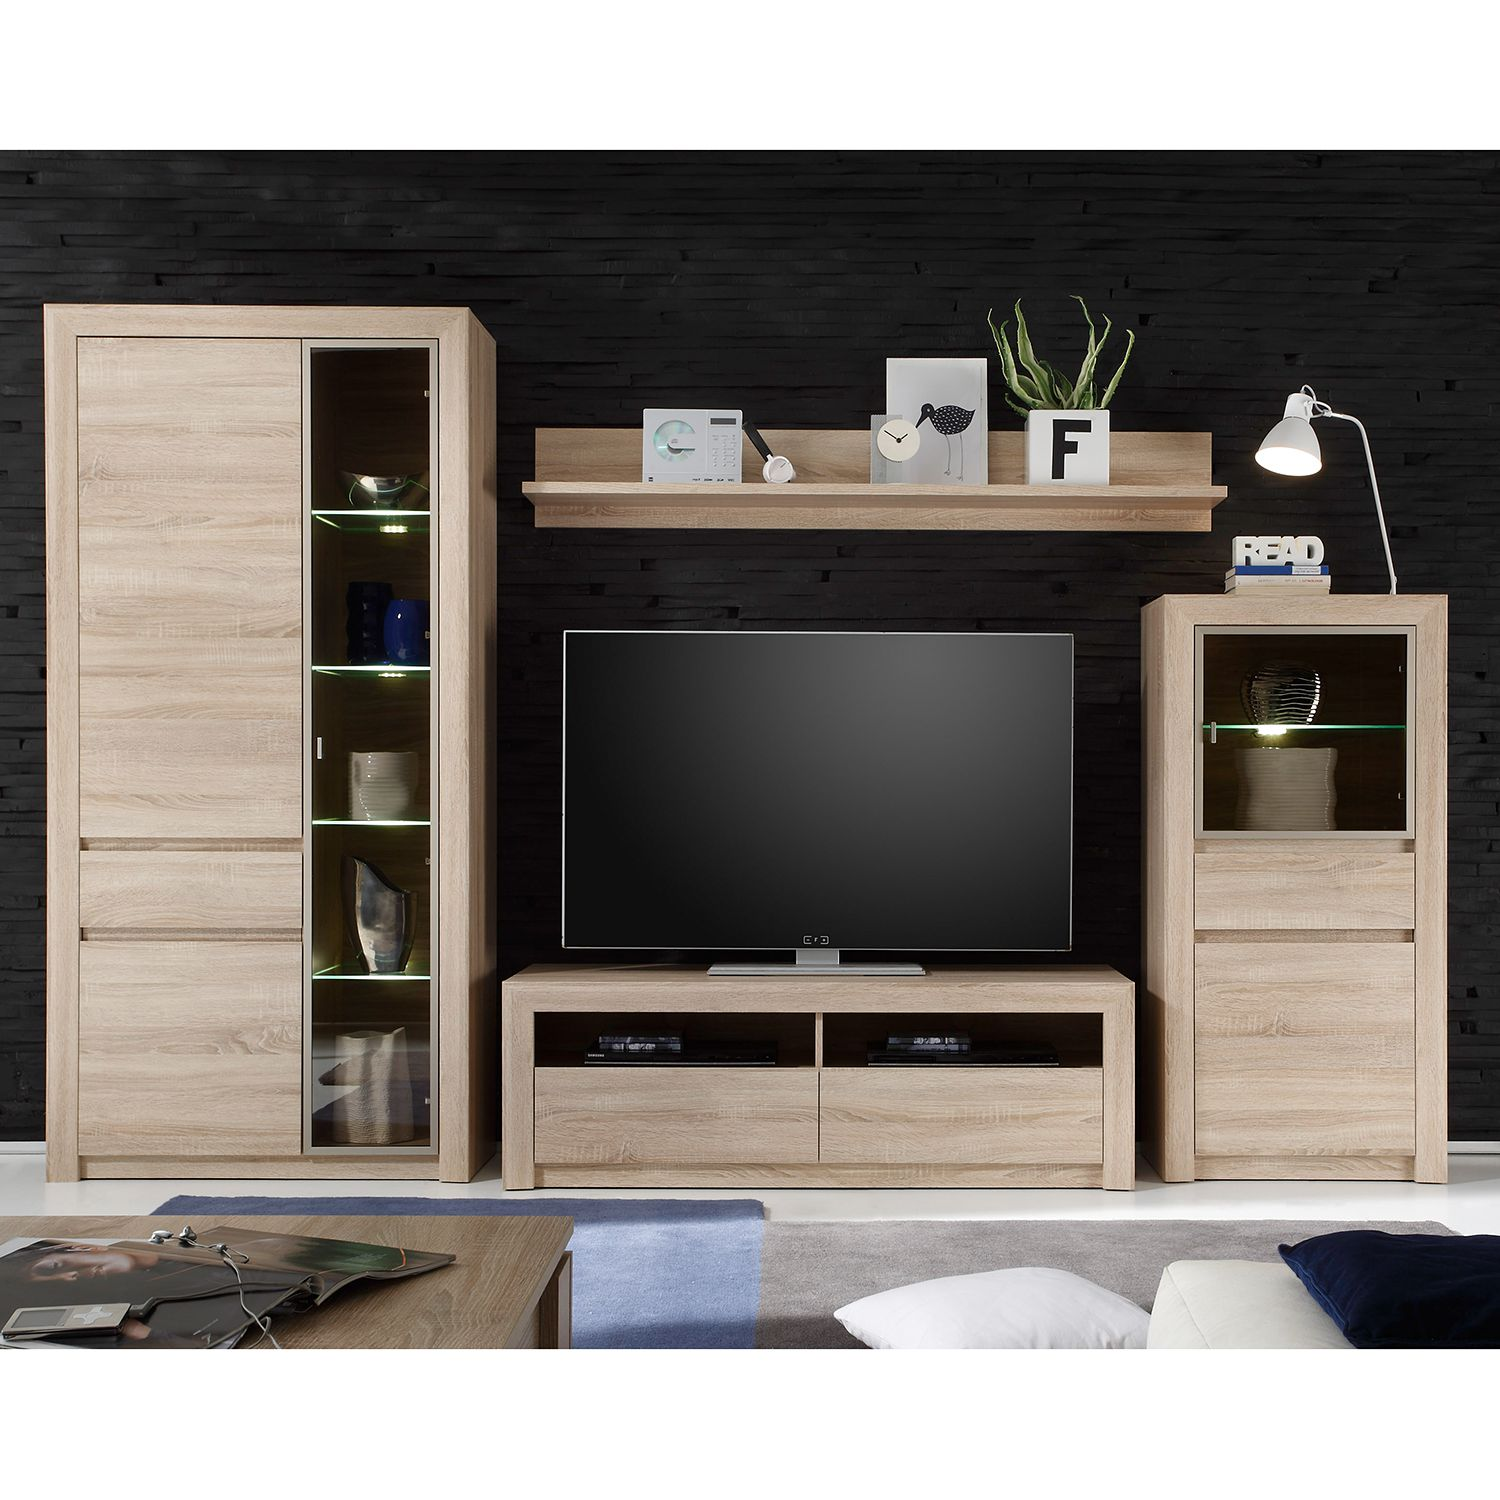 designer m bel trends tv und mediam bel online g nstiger kaufen. Black Bedroom Furniture Sets. Home Design Ideas